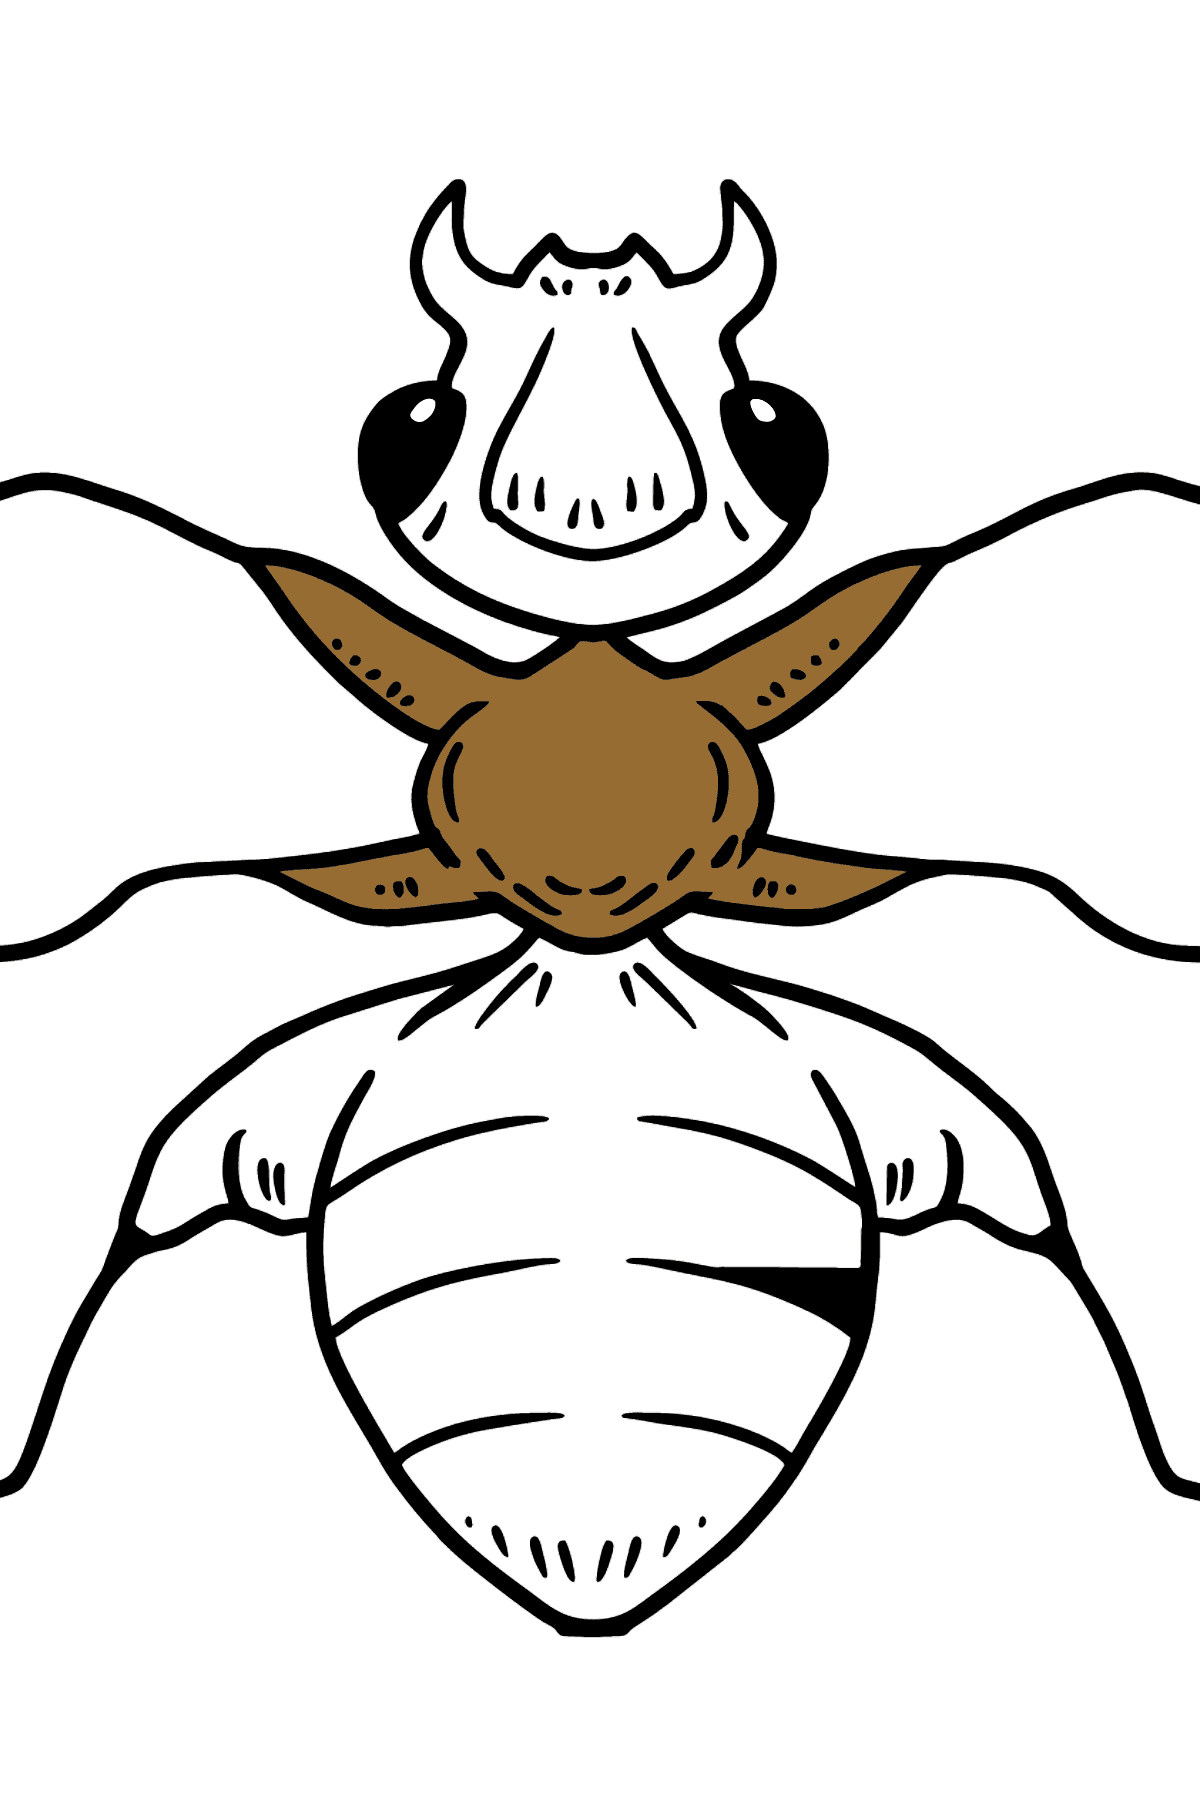 Ant coloring page - Coloring Pages for Kids